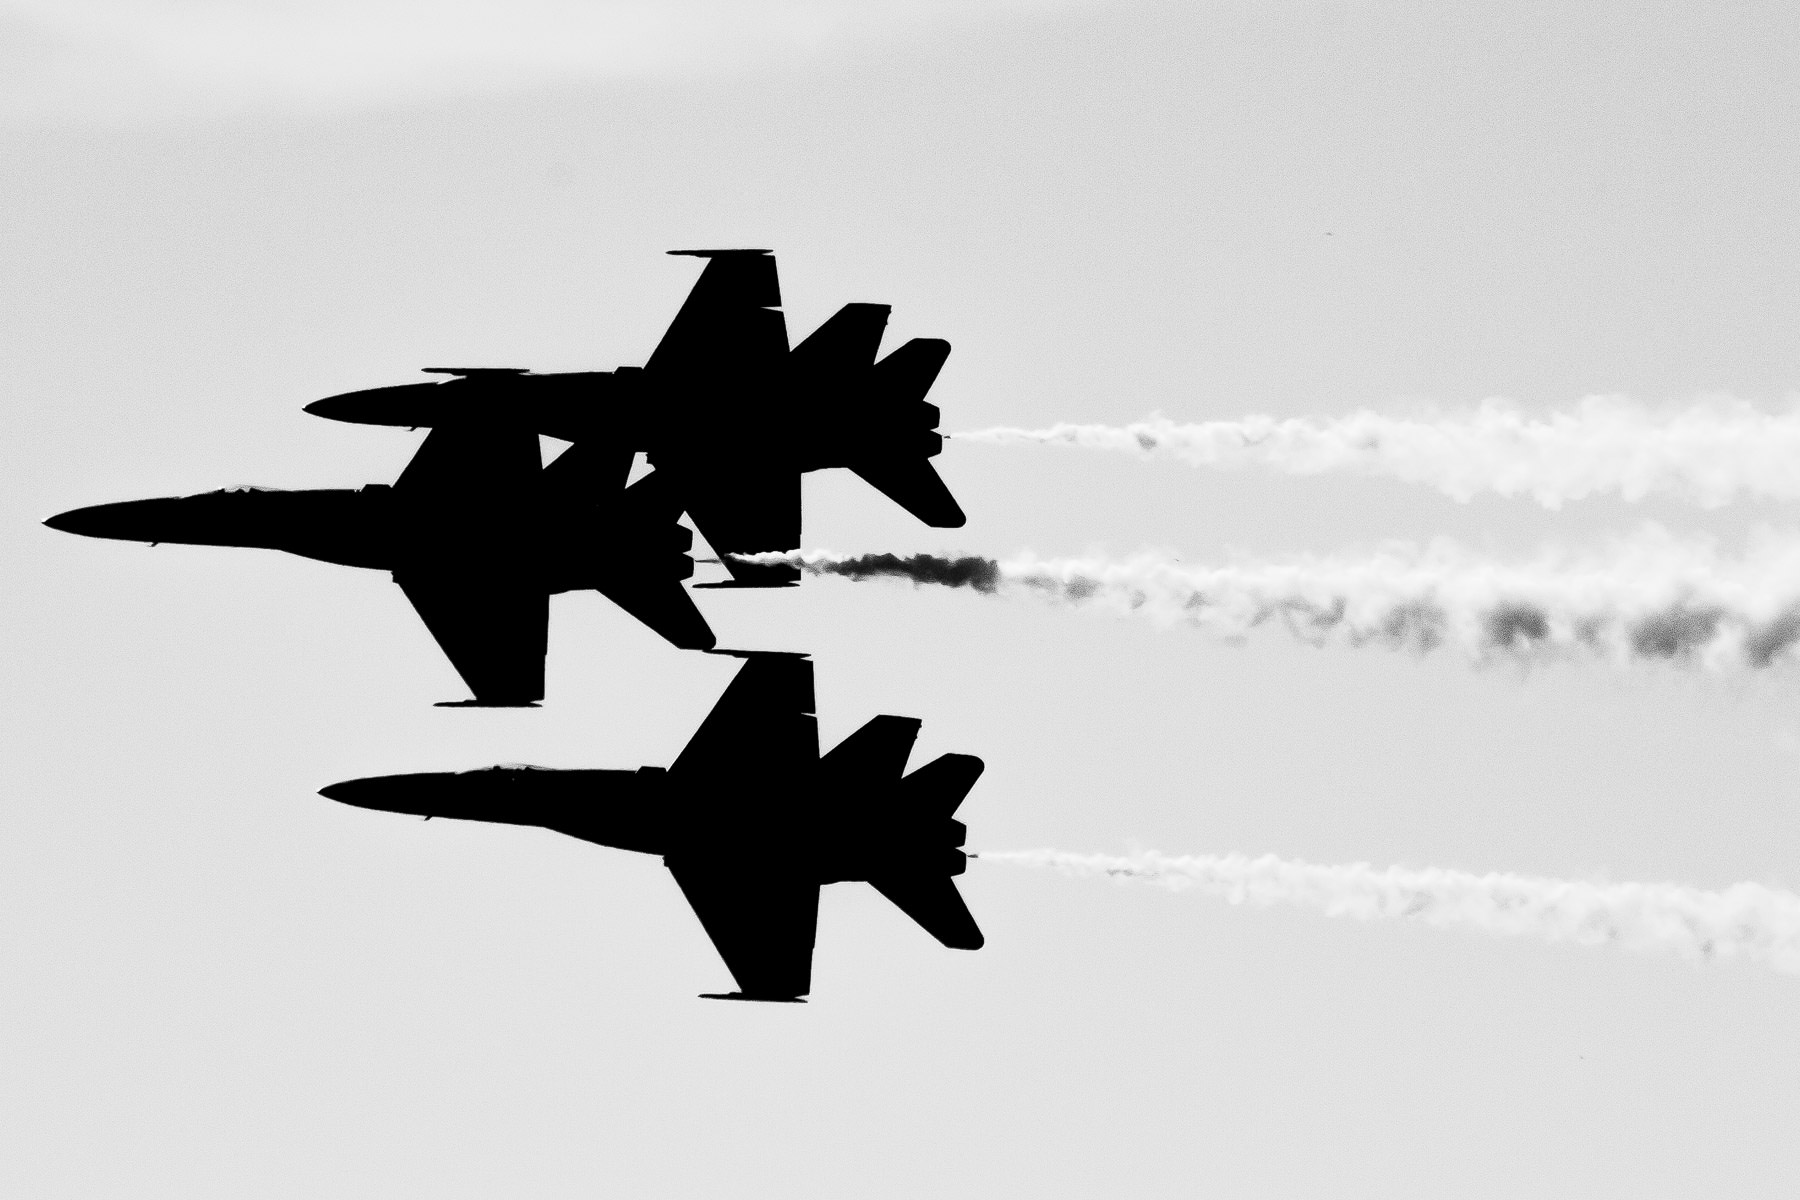 The U.S. Navy's Blue Angels at the Fort Worth-Alliance Air Show, silhouetted against the sky.